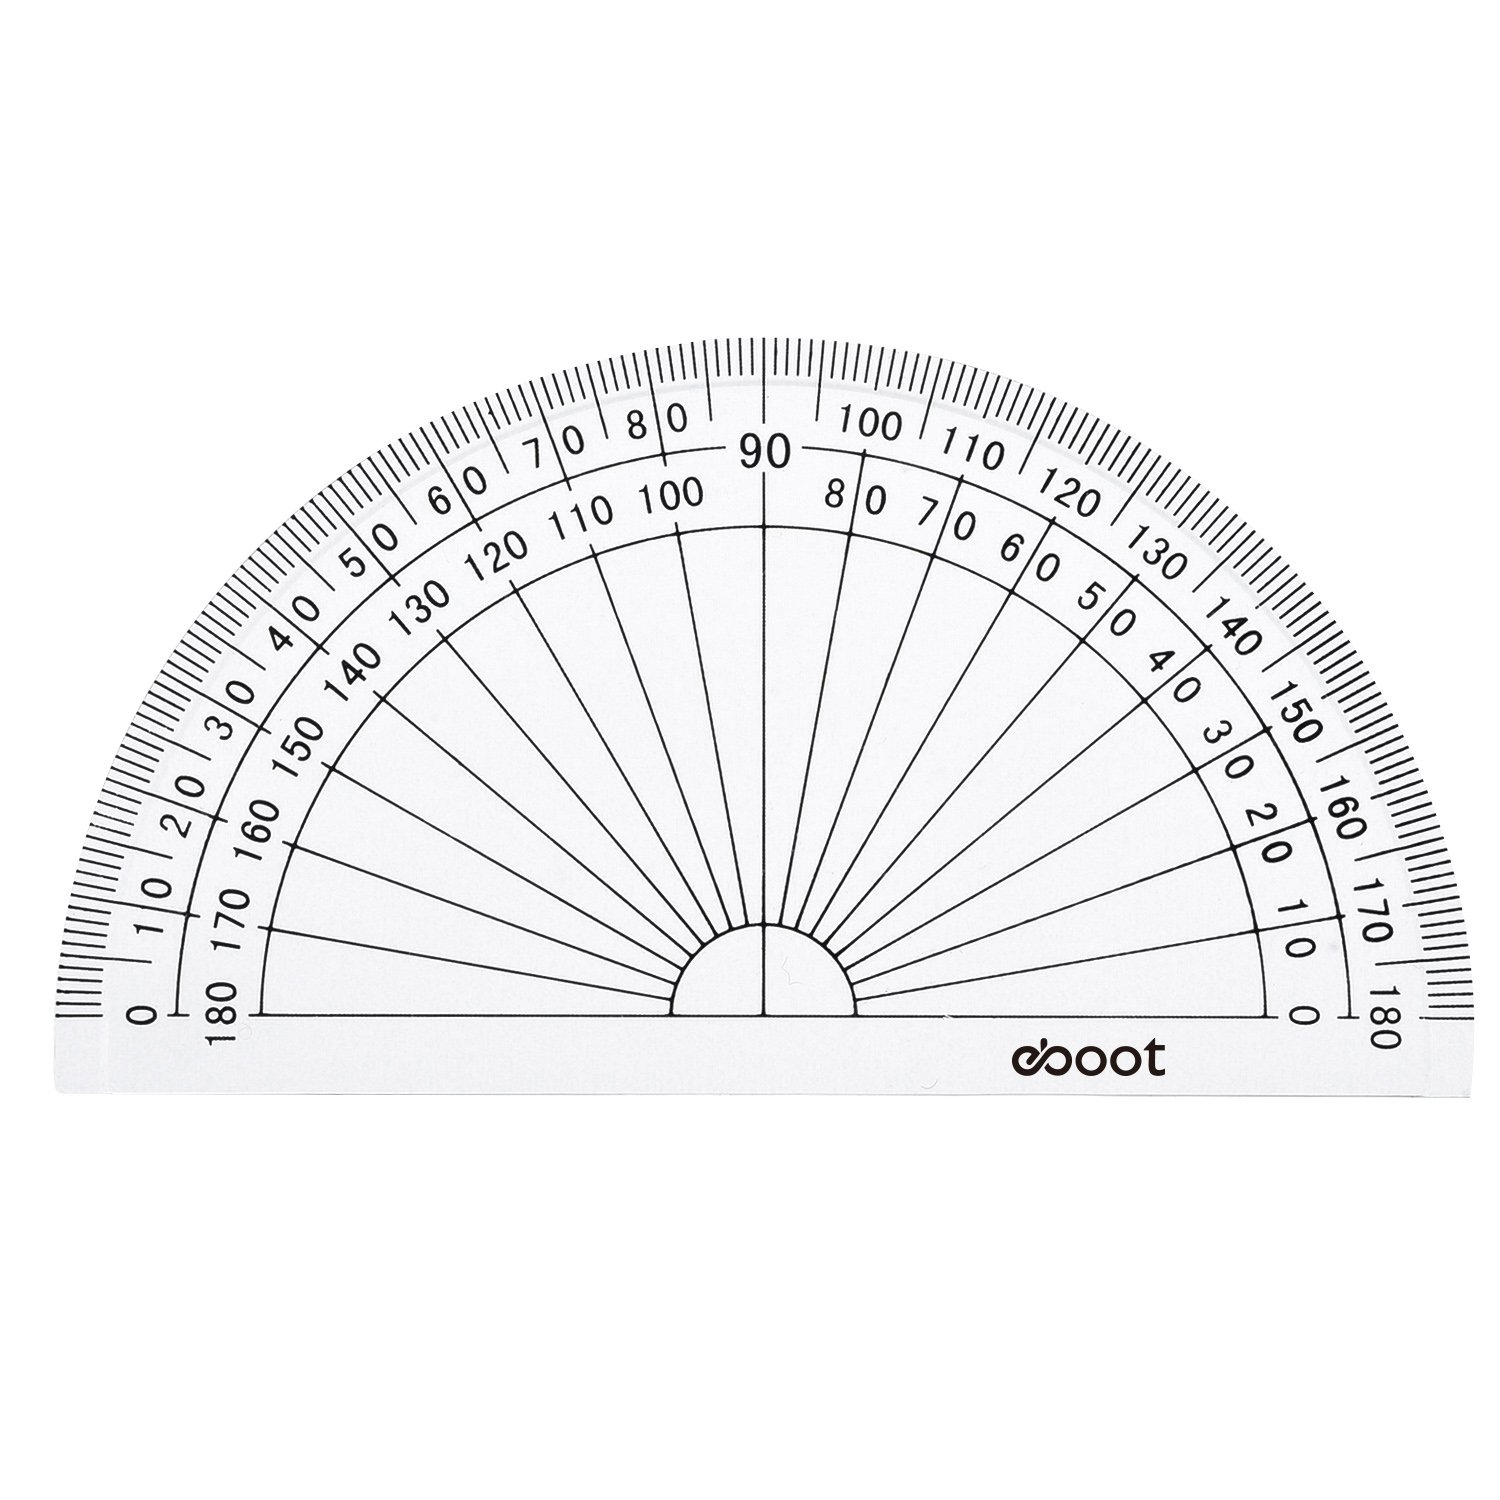 eBoot 28 Pack Clear 180 Degree Plastic Protractors for Angle Measurement, 10 cm by eBoot (Image #2)